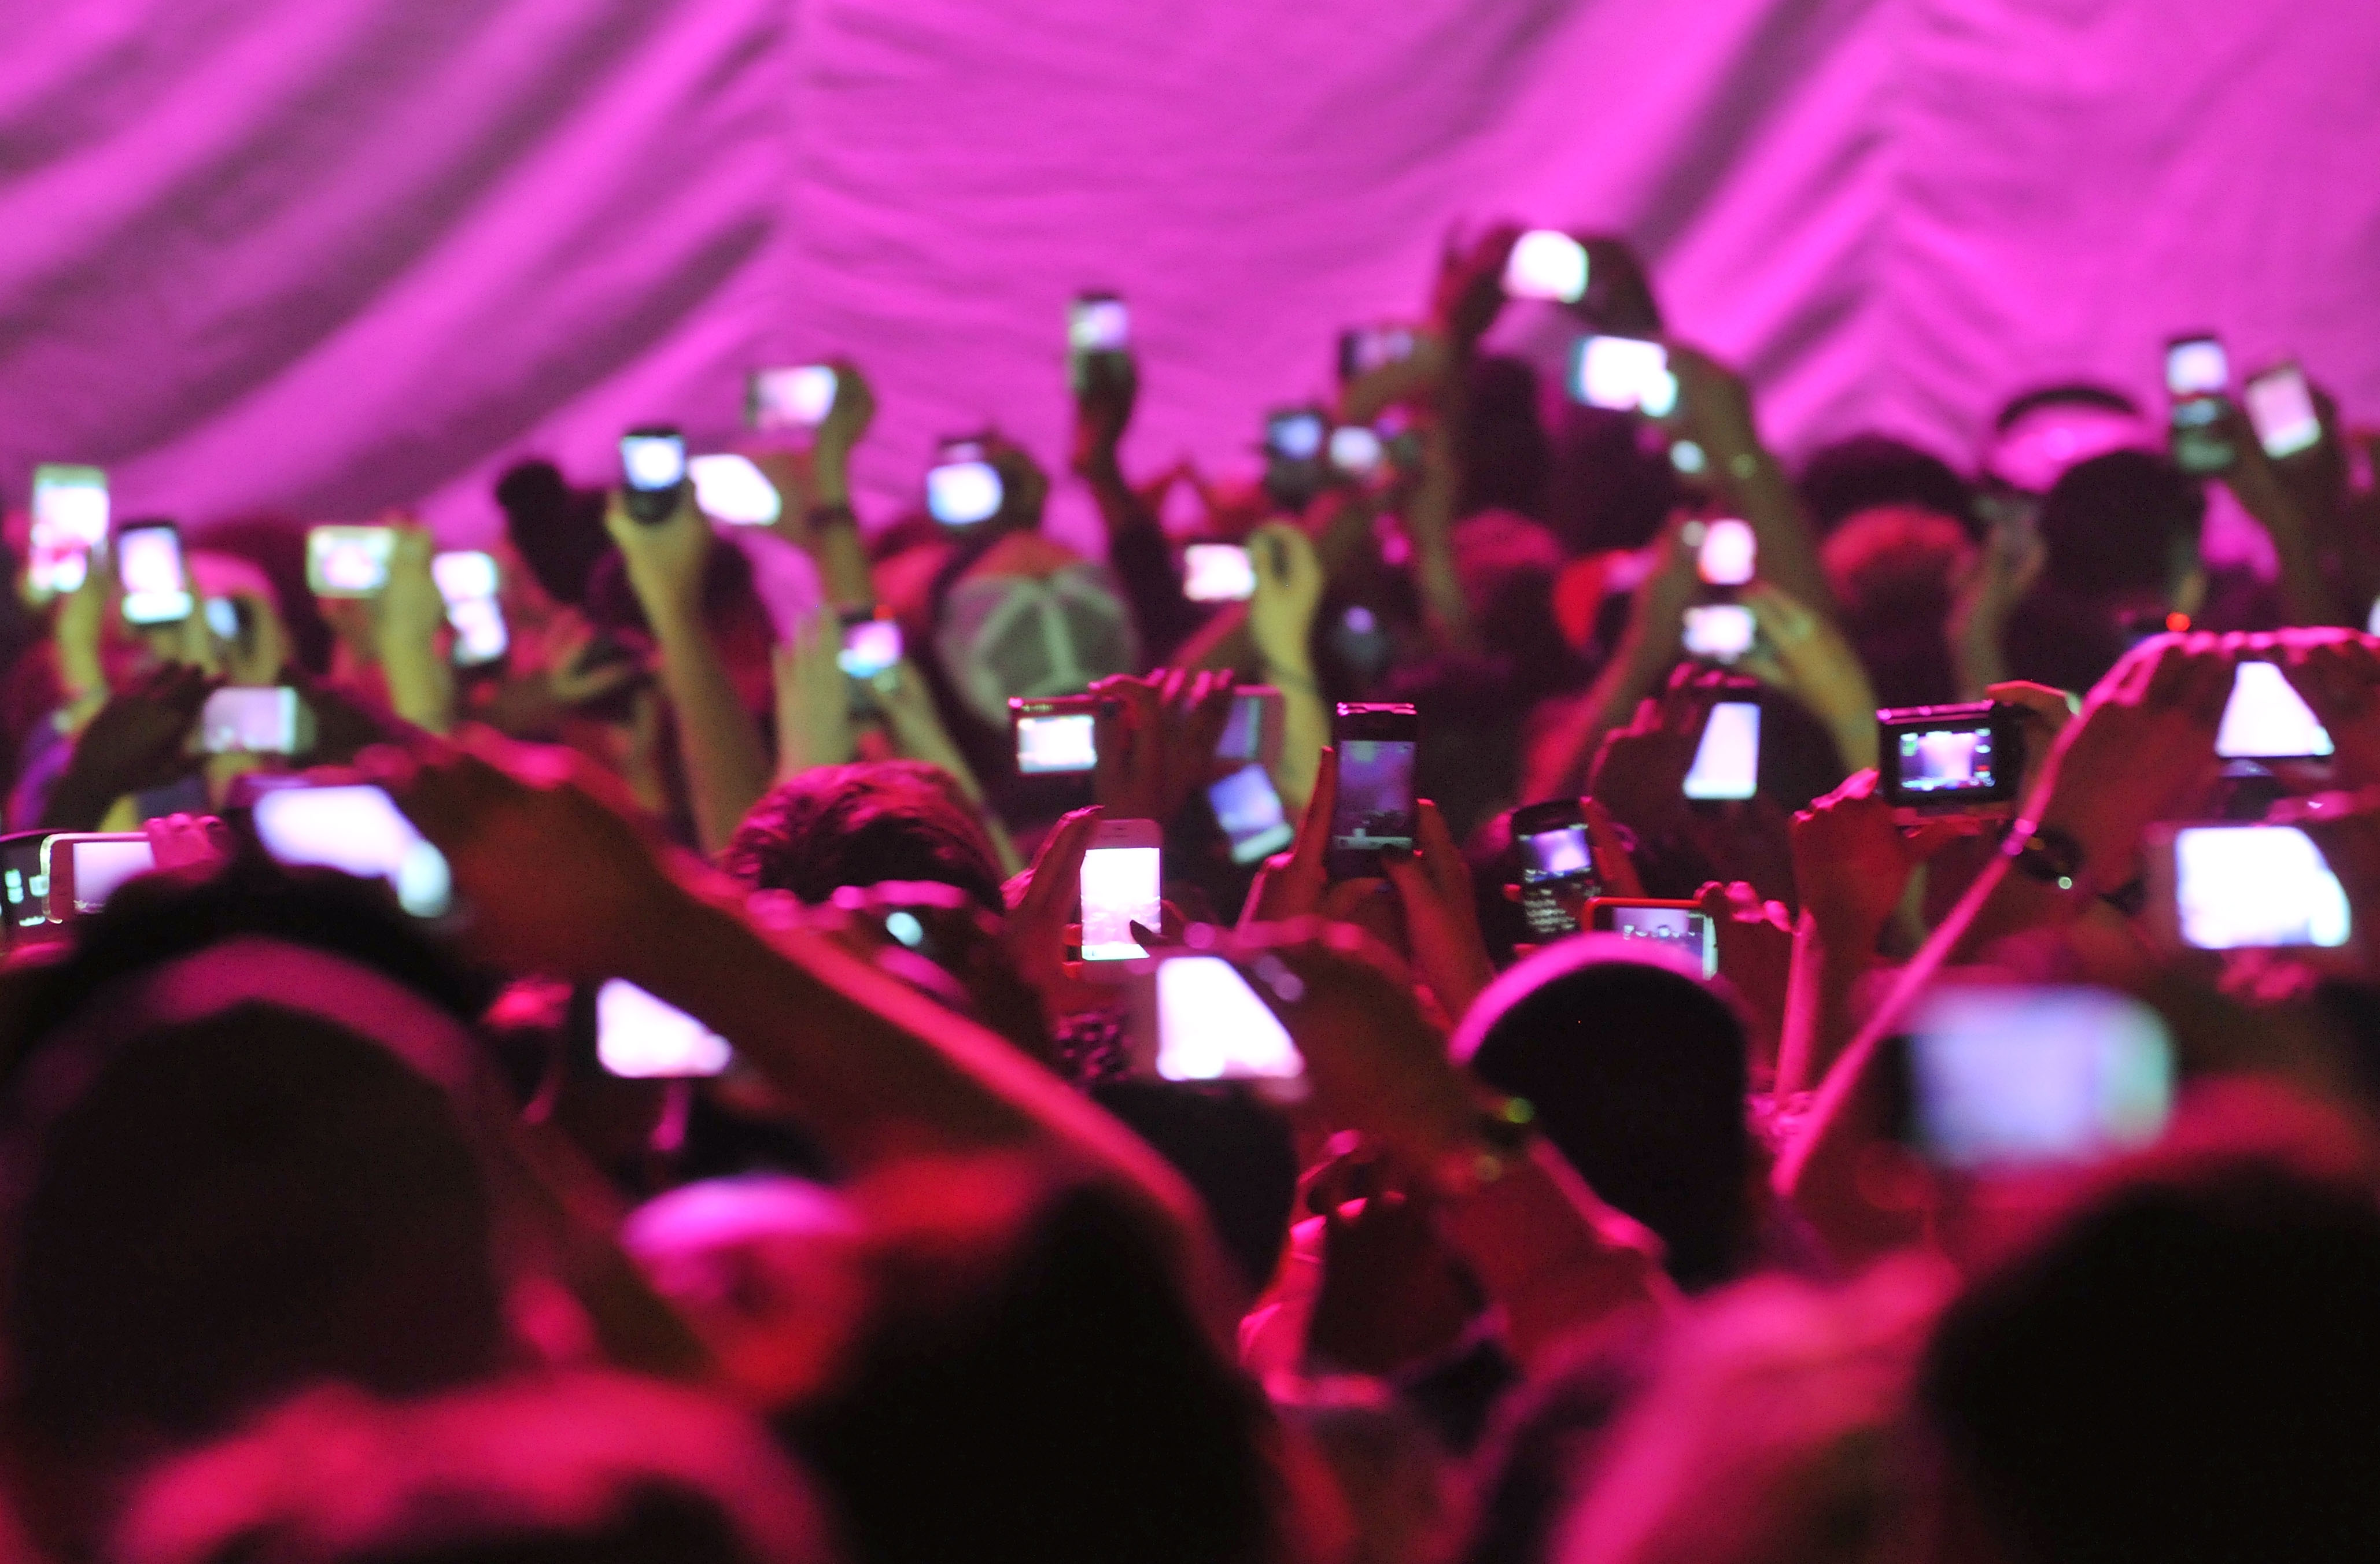 Members of the audience hold up cameras and mobile telephones as American rapper and R&B singer Nicki Minaj takes to the stage stage during her 'Pink Friday' tour at HMV Hammersmith Apollo on June 24, 2012 in London, United Kingdom.